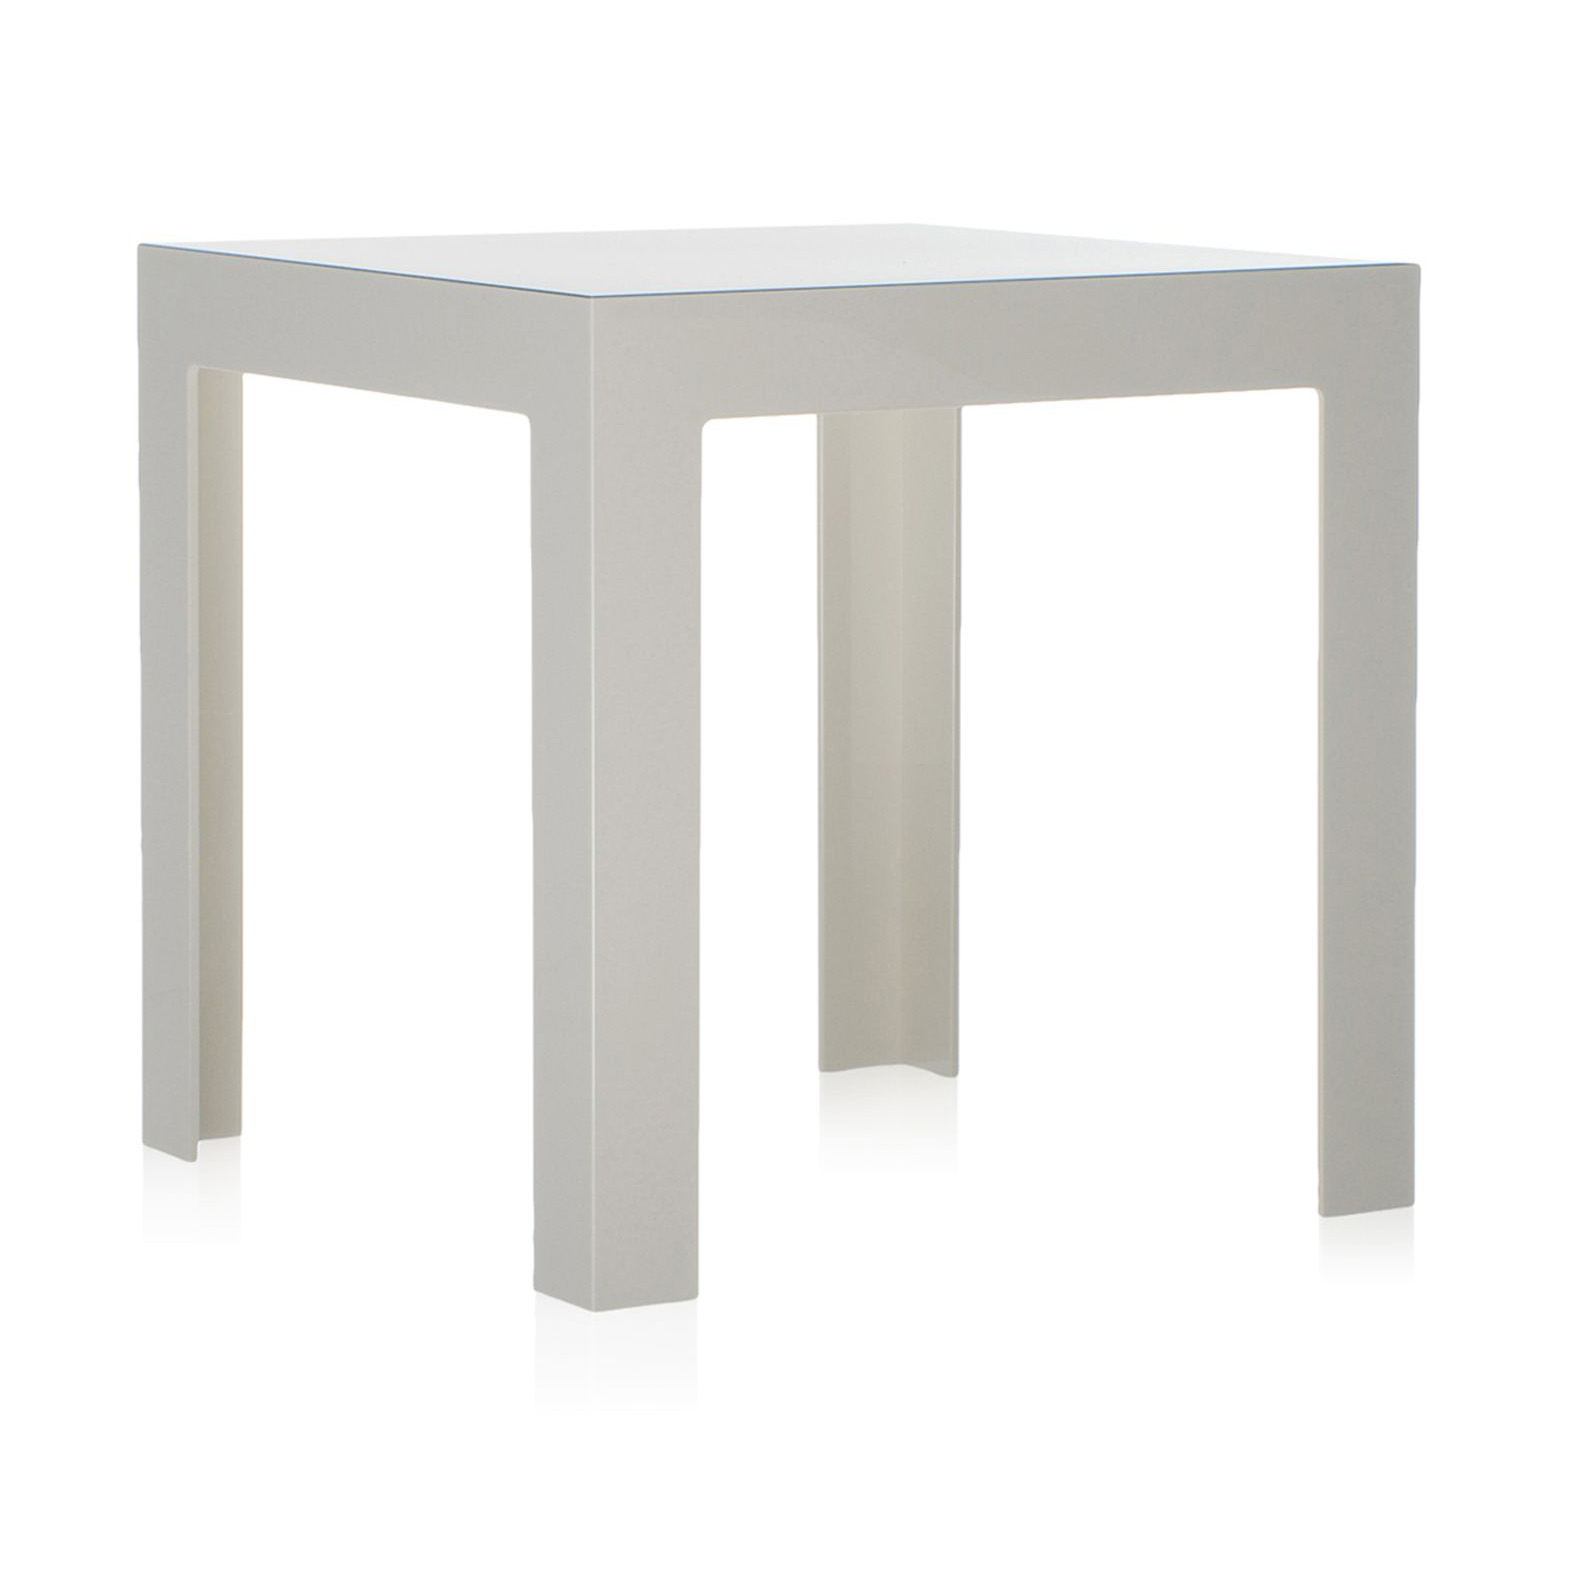 buy the kartell jolly table online from connections at home - kartell jolly table nextprev